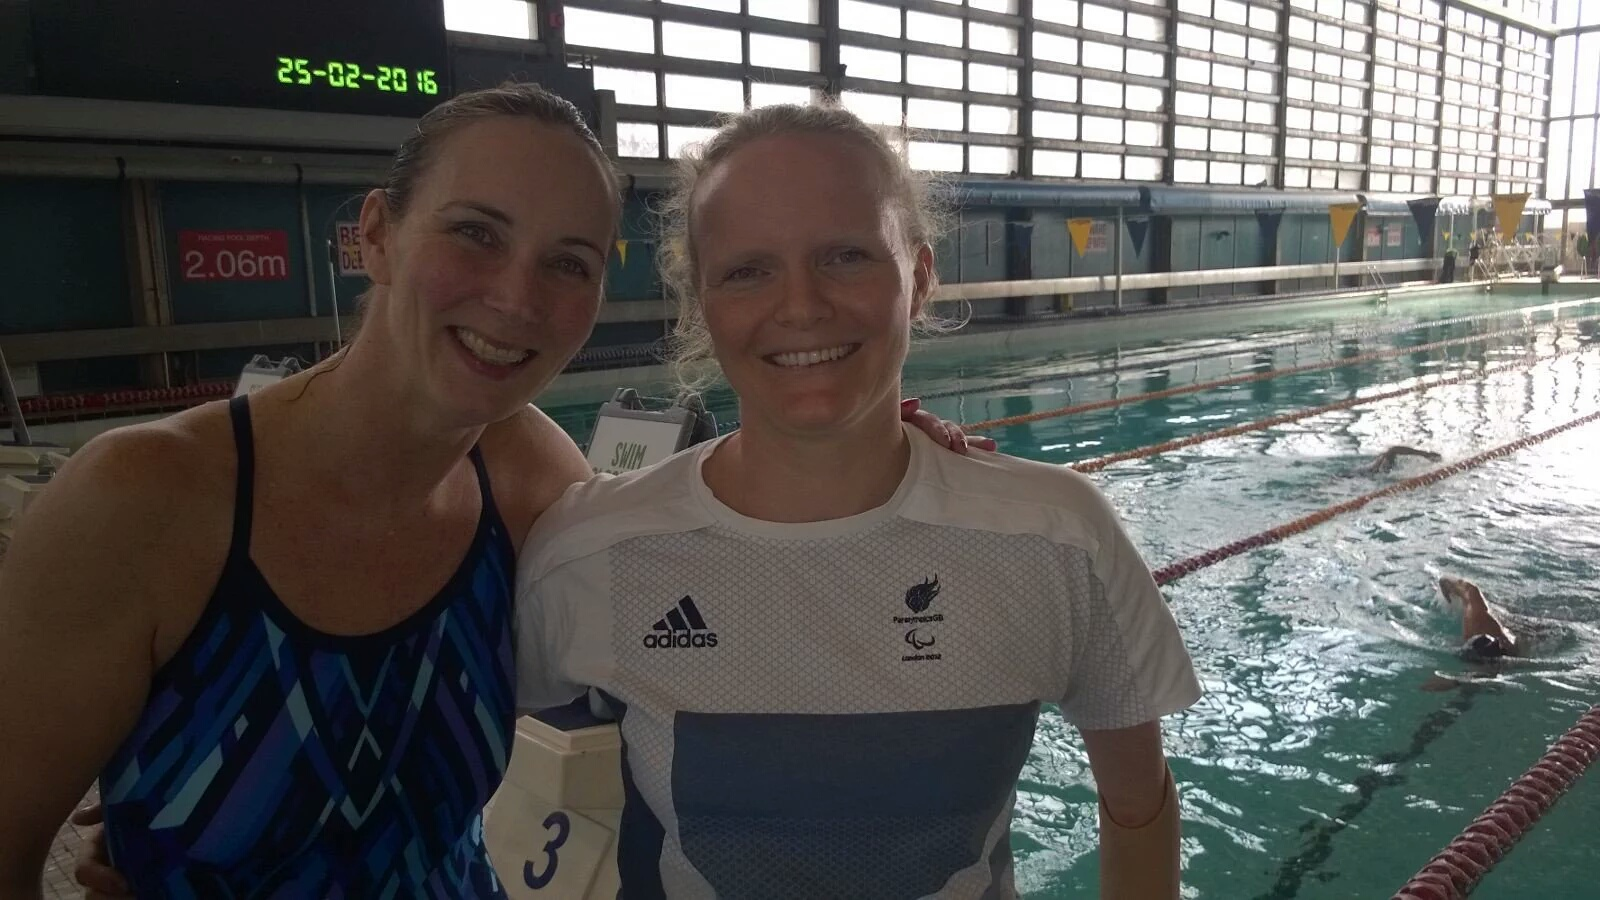 Zoggs' Claire with Team GB Athlete Susan Rodgers